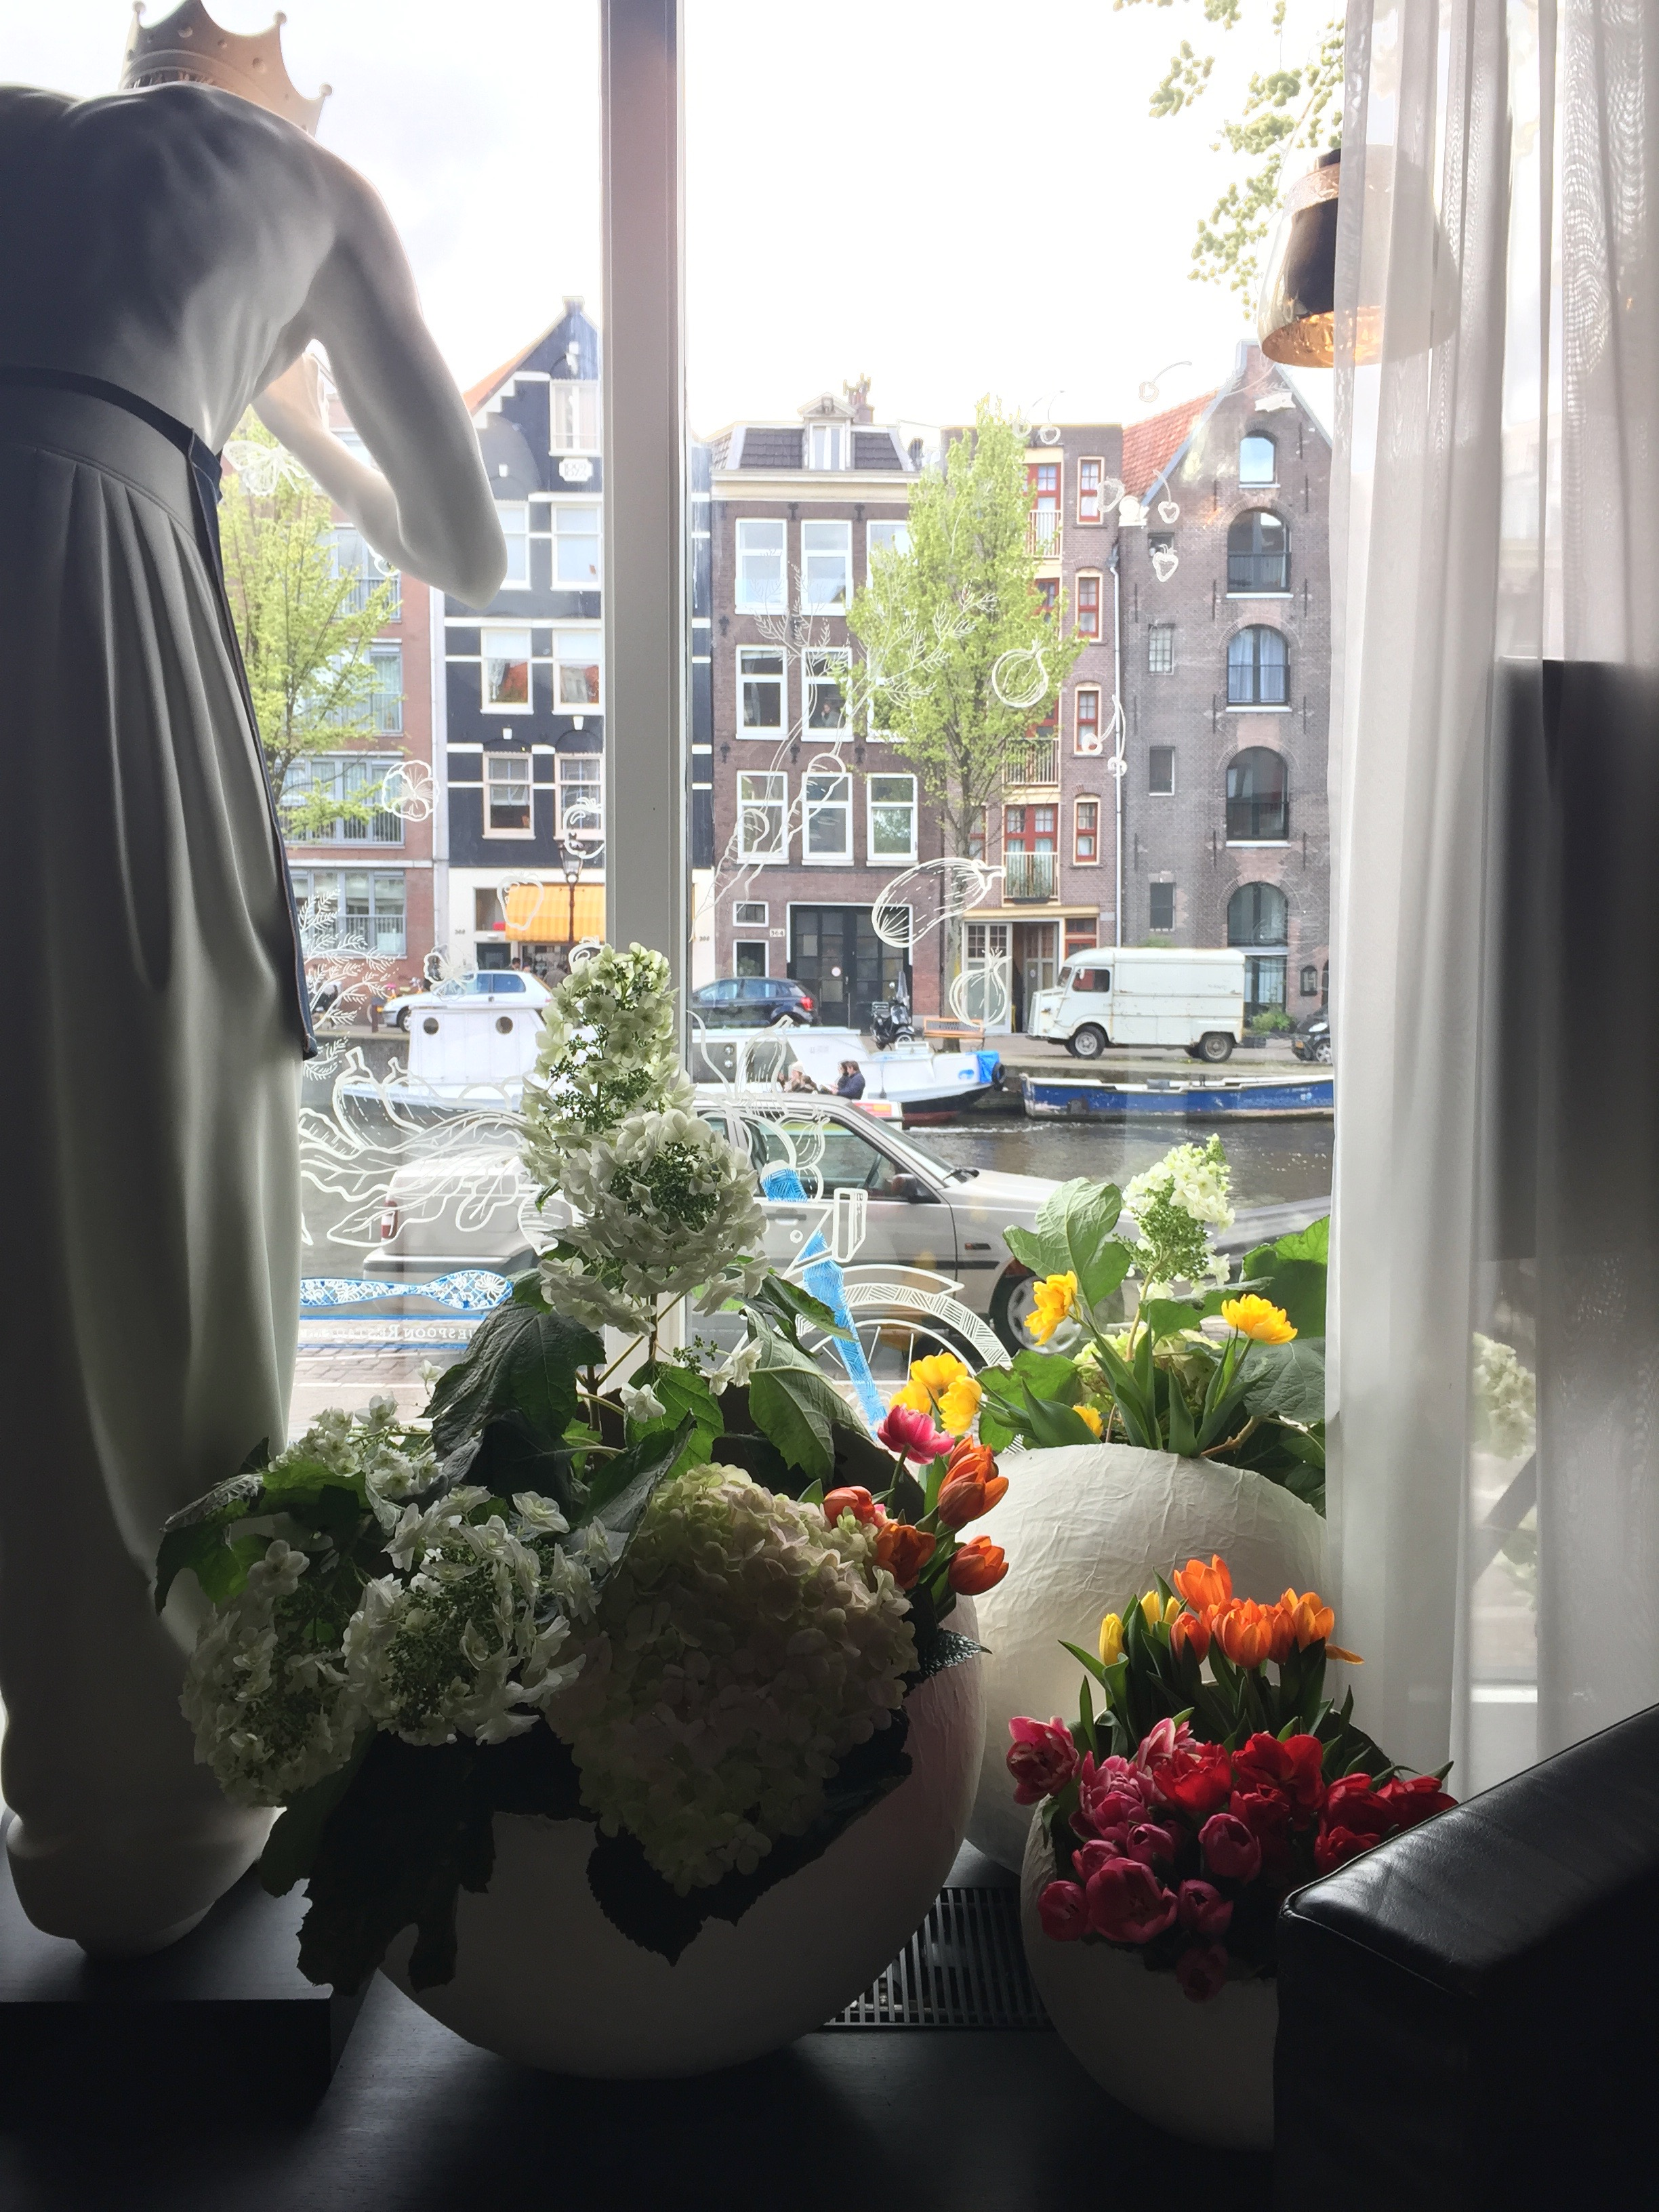 . . . . . #apbloem #florist #amsterdam #bloemist #kerkstraat #bloemen #stijl #styling #floristry #bloemenwinkel #floral #artisan #boutique #kleur #colour #lifestyle #lente #spring #dsfloral #nature #eggs #easter #tulips #luxury #marcelwanders #paasdag #pasen #chocolate #dsfloral #bar #interior #interieur #floral #bloemisten #tulpenfestival #holland